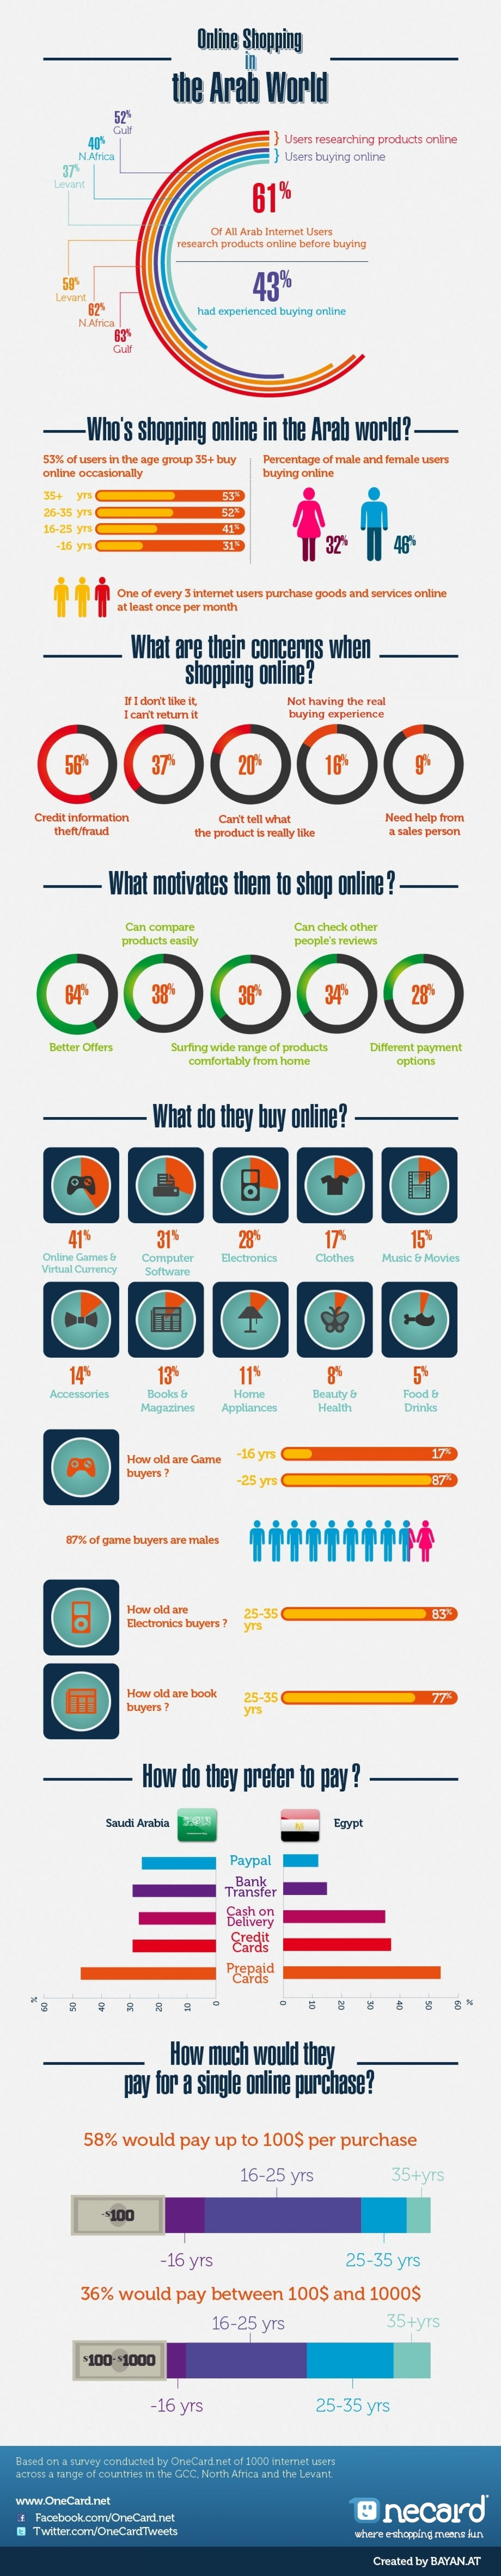 Online shoping in the Arab World Infographic